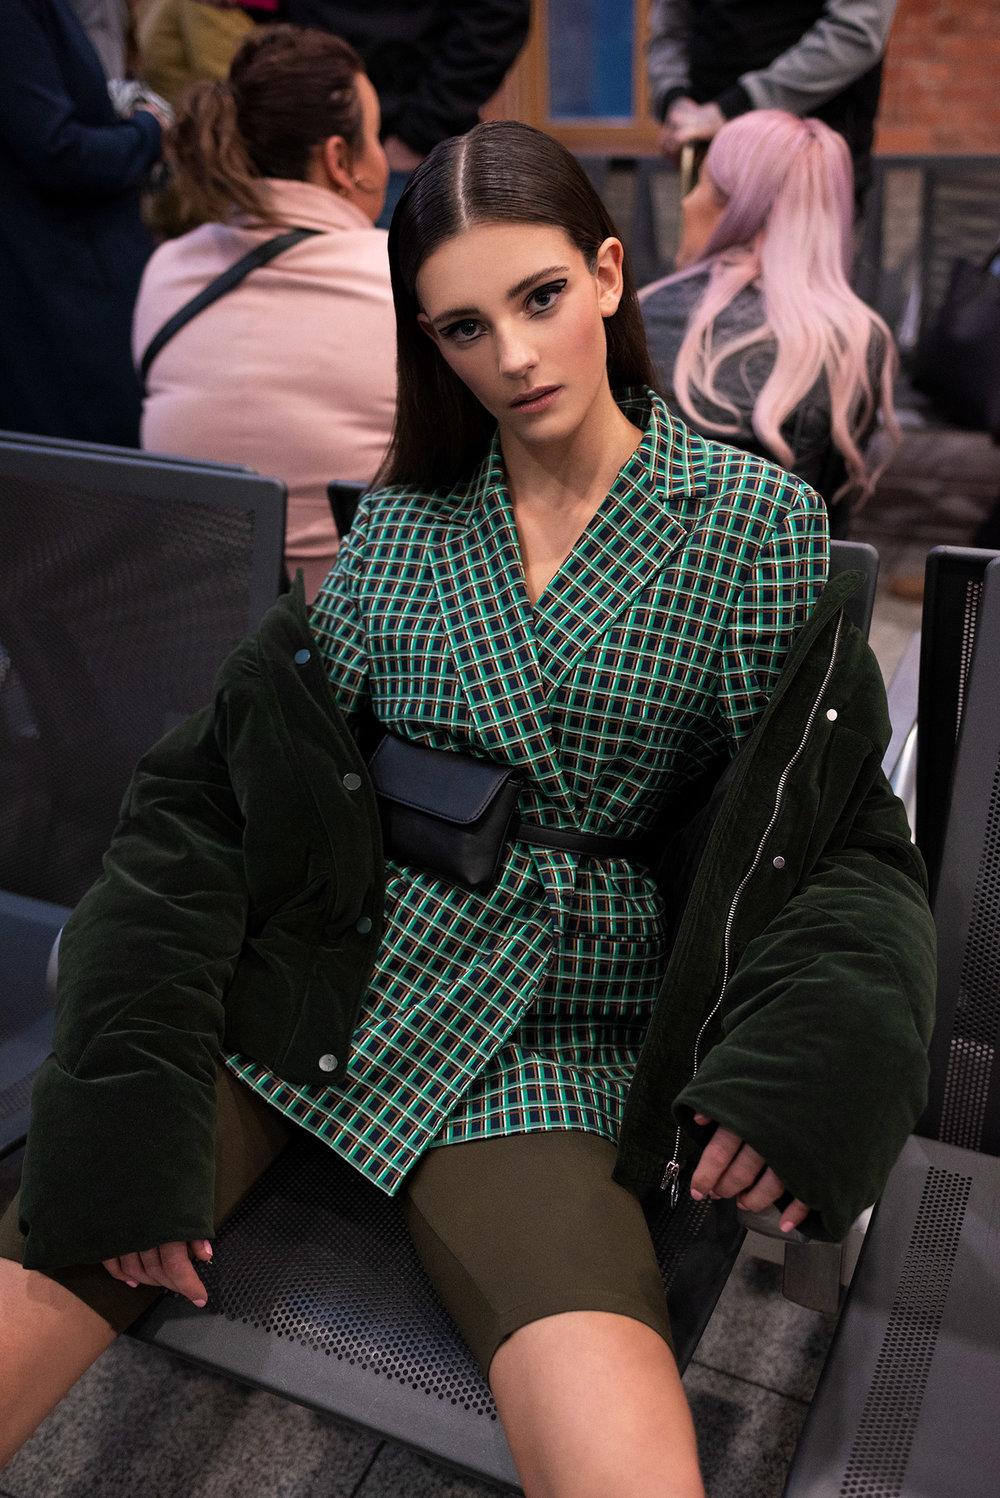 Second-outfit-green-crop-waiting-area-07-5289.jpg